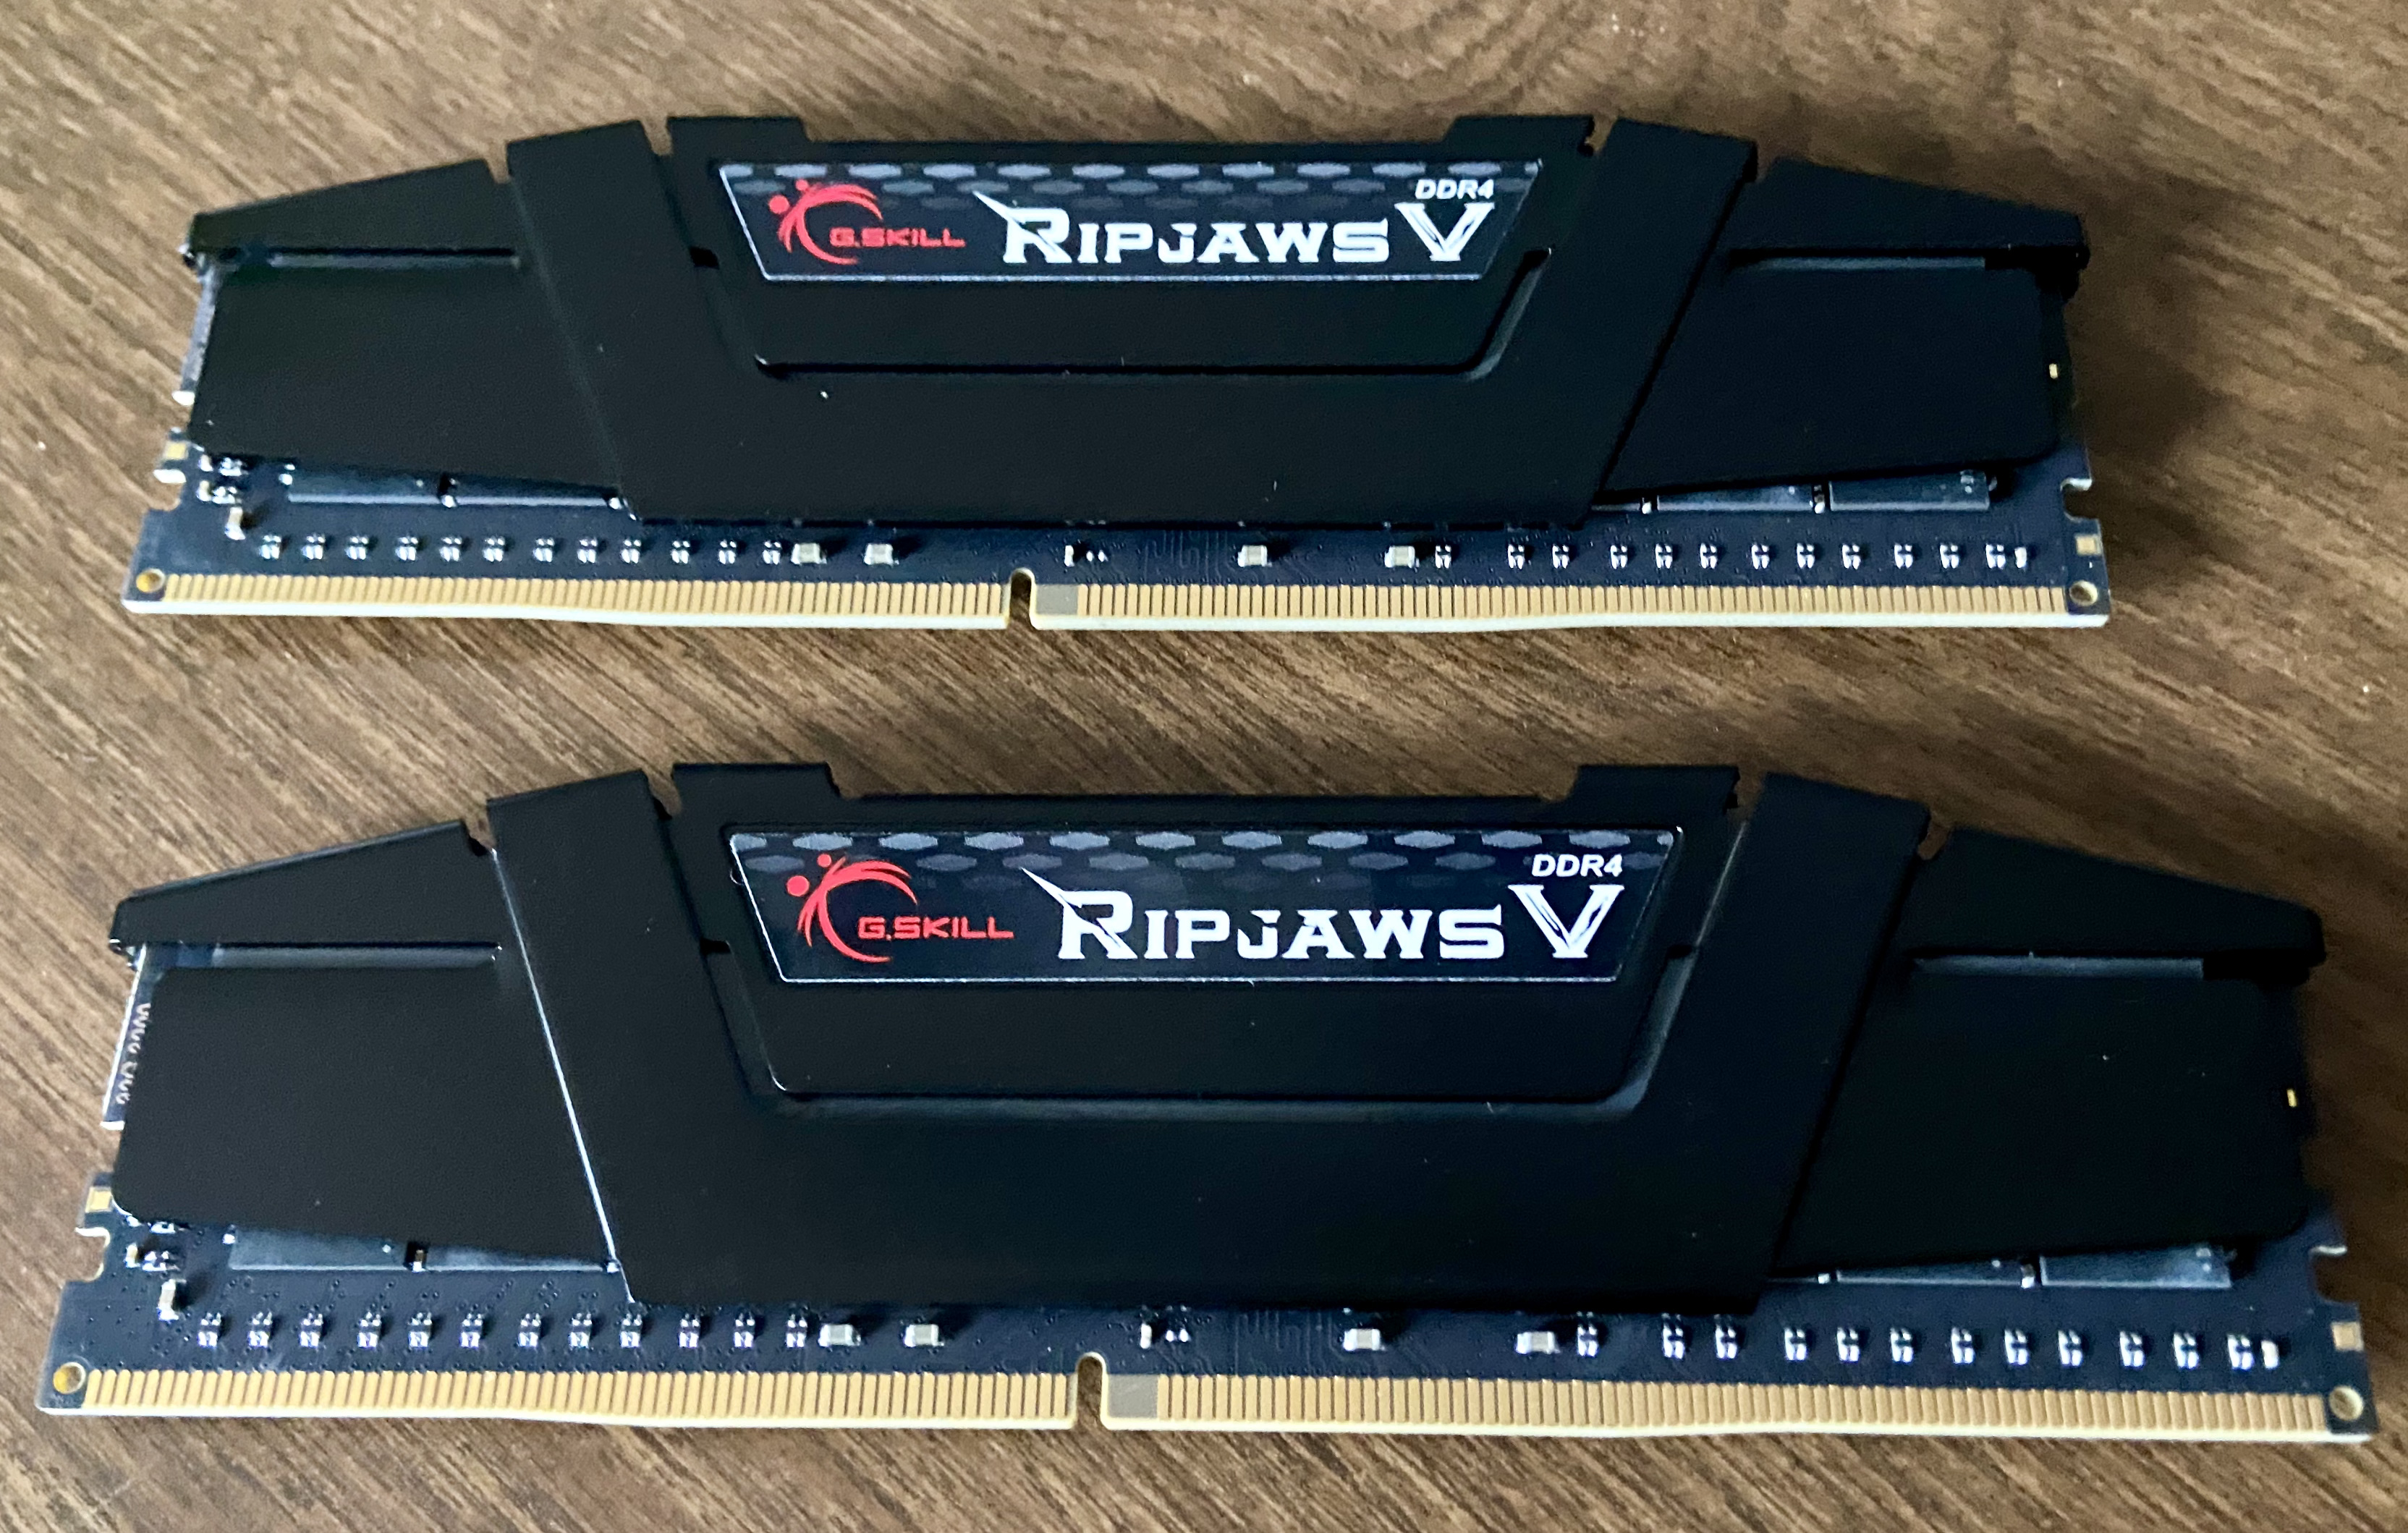 Two 32GB sticks of DDR4 3200 ram in